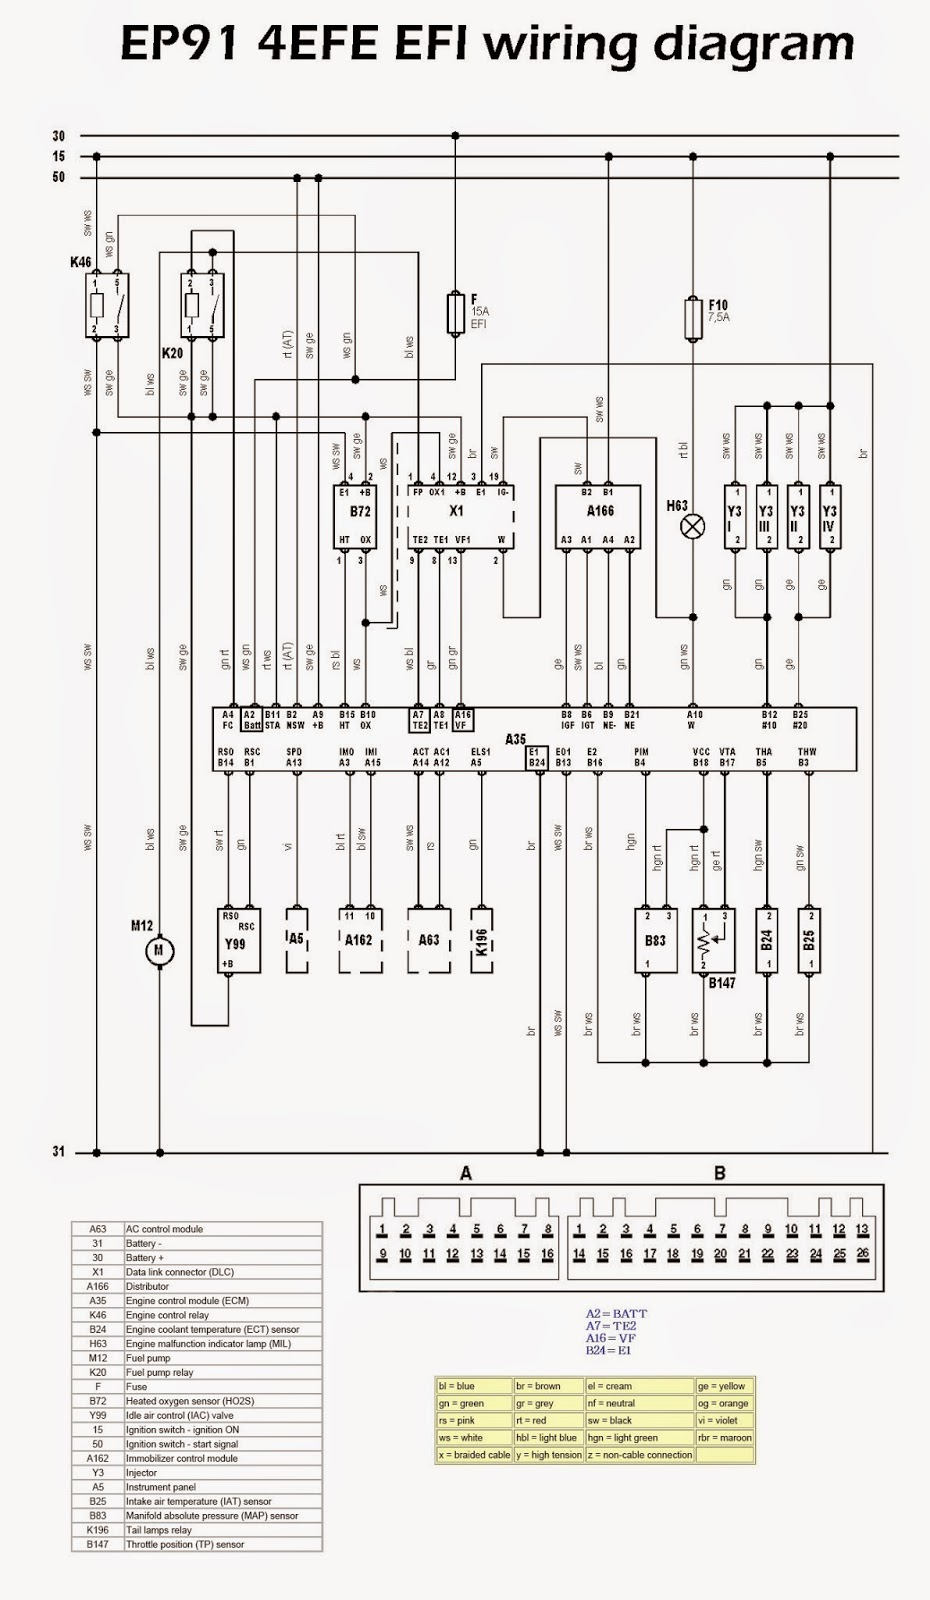 diagram] toyota 4efe wiring diagram full version hd quality wiring diagram  - mediagramm.argiso.it  mediagramm.argiso.it